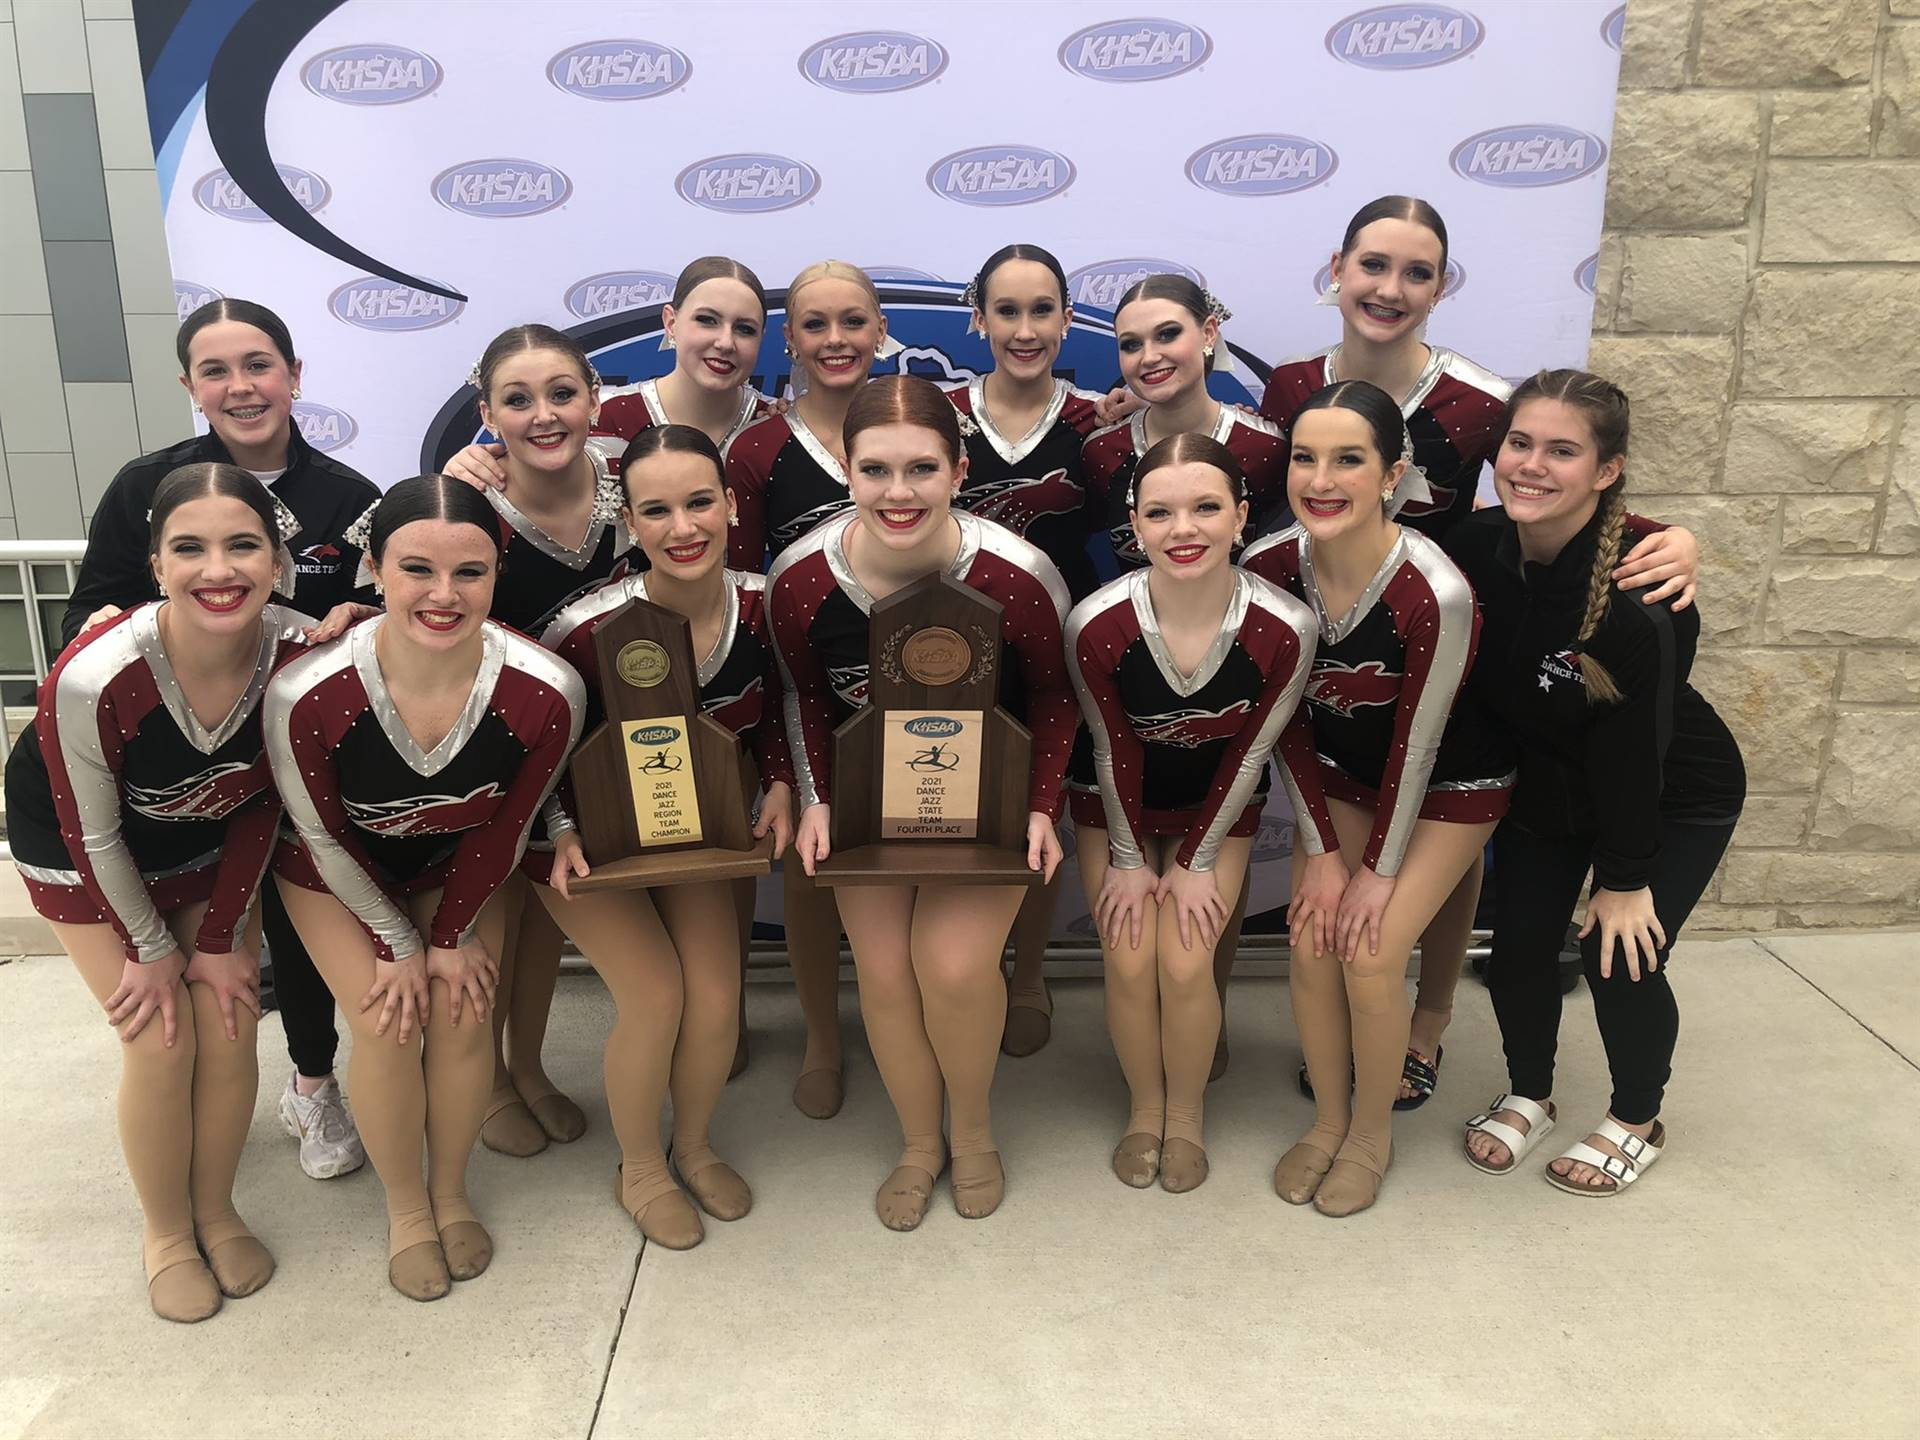 Mustangs Dance - 2021 KHSAA Jazz State Team 4th Place!